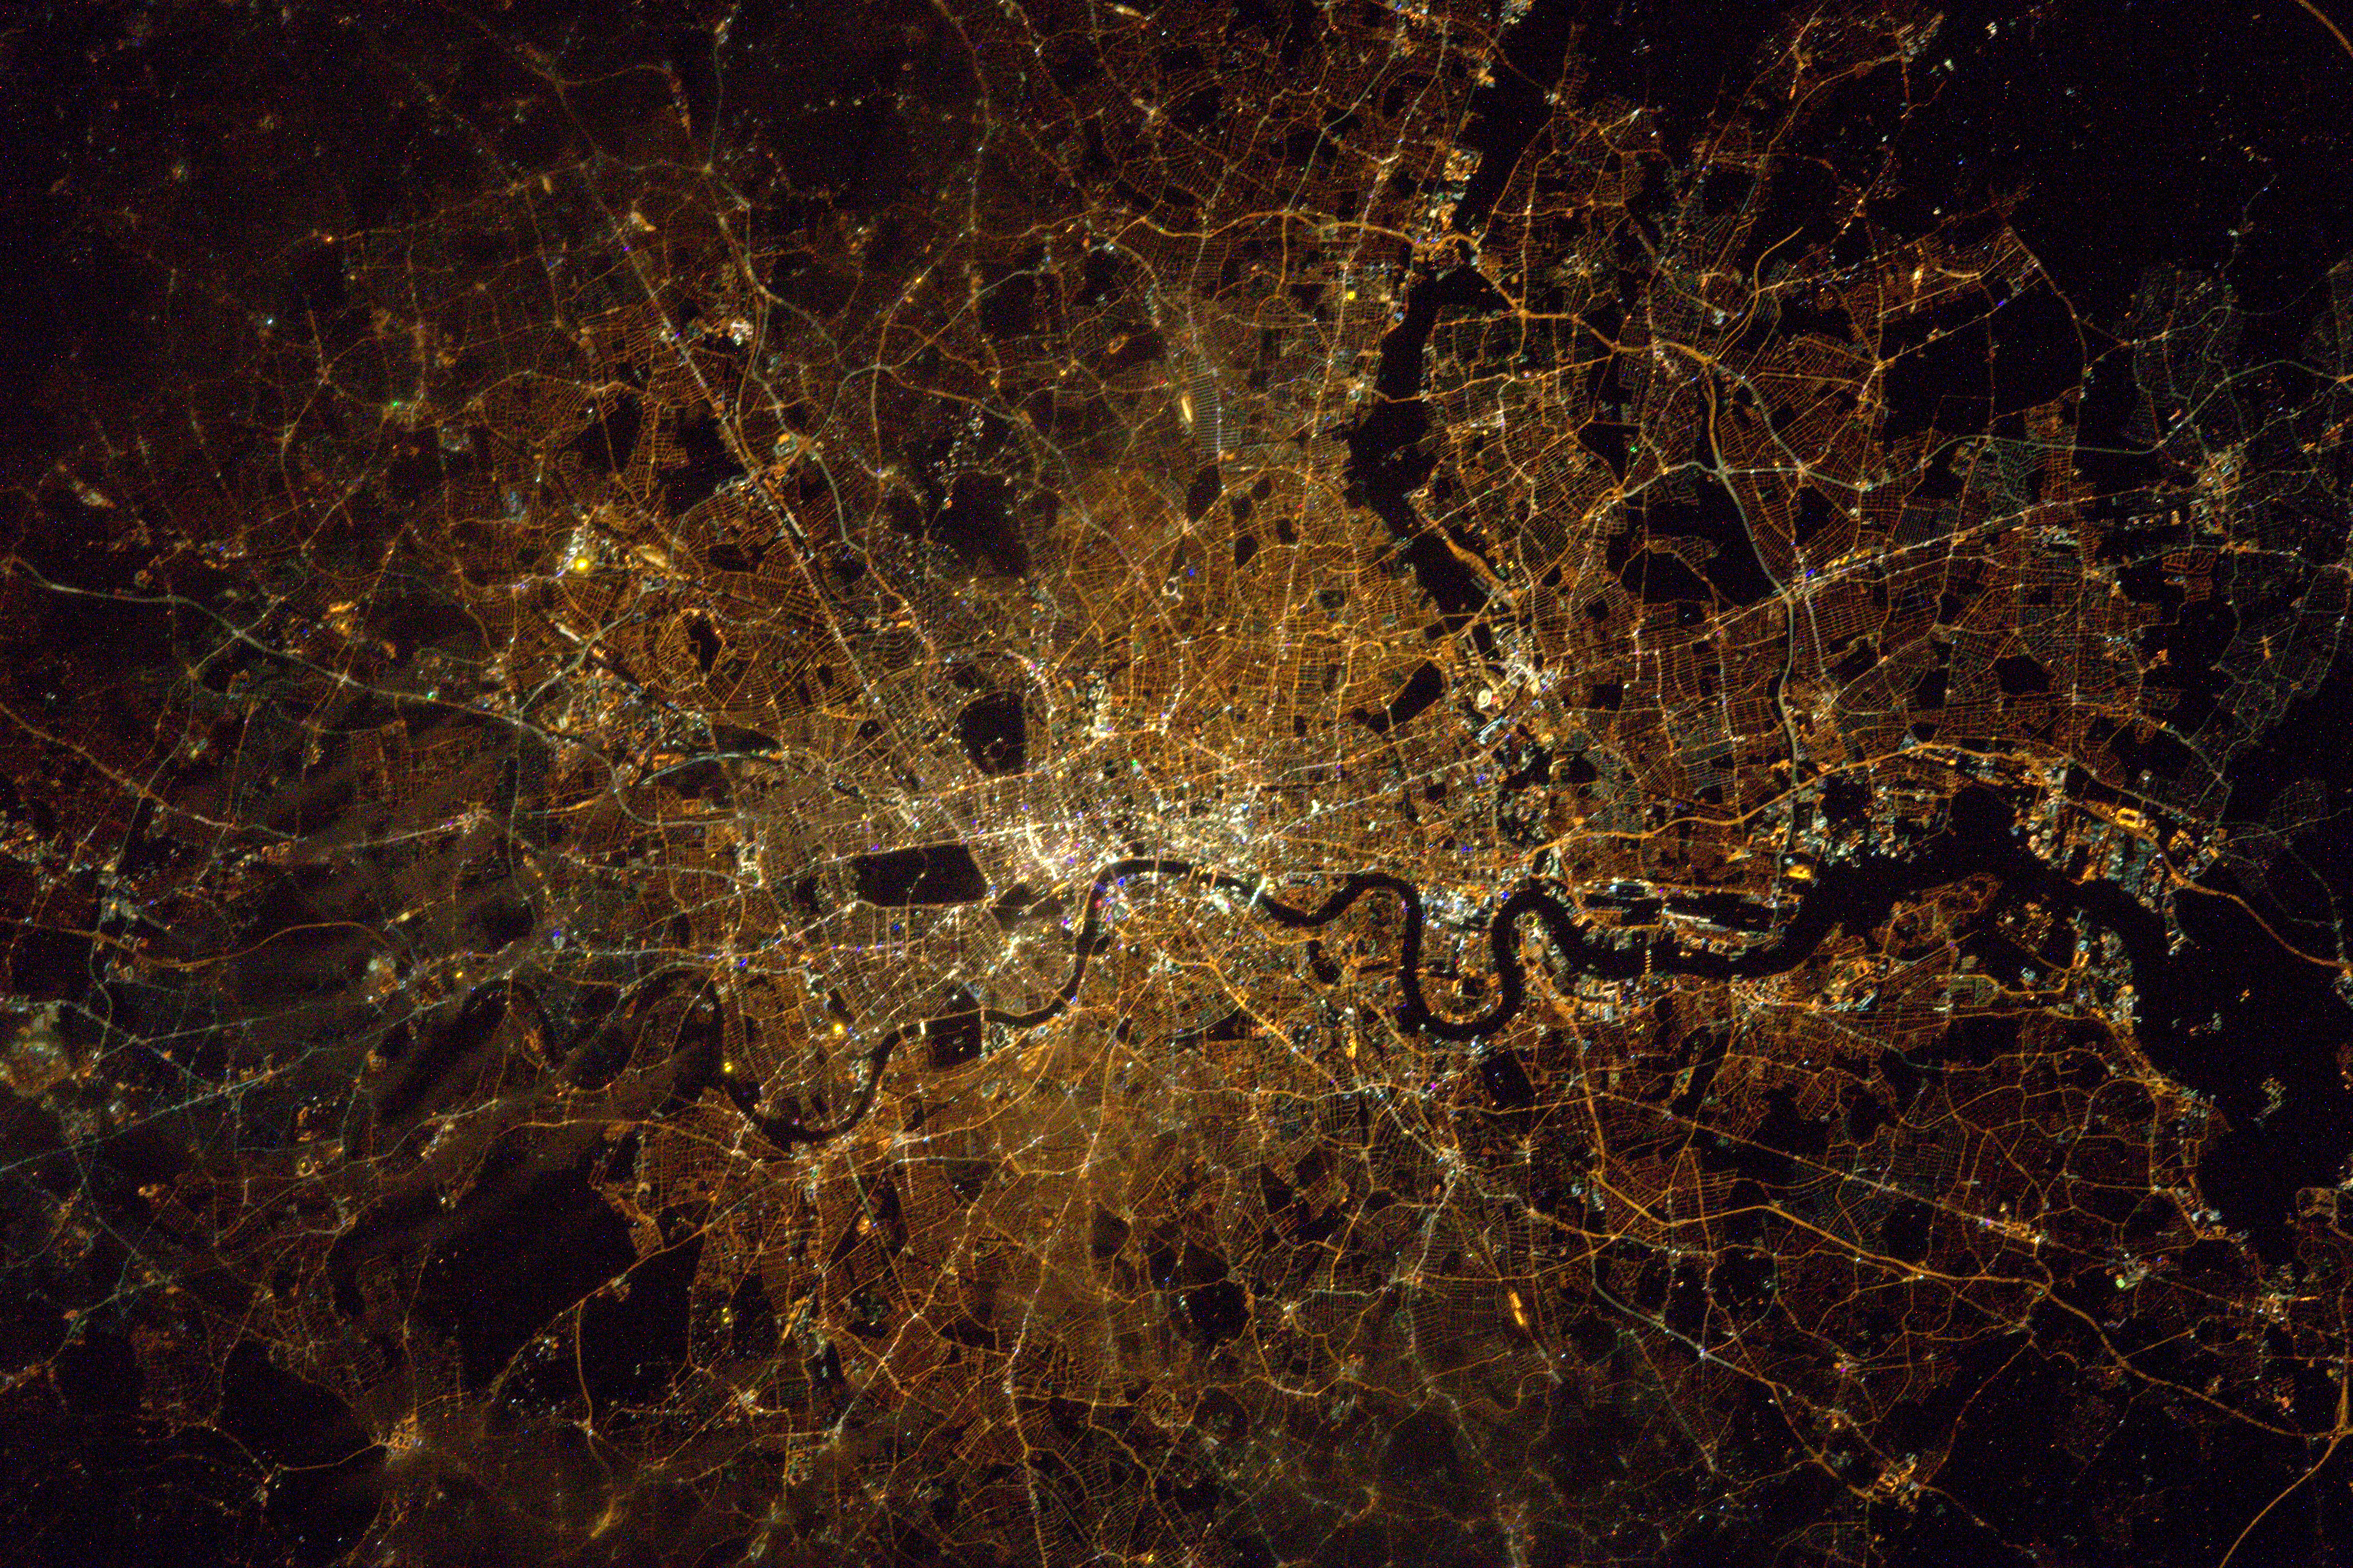 London at Night image